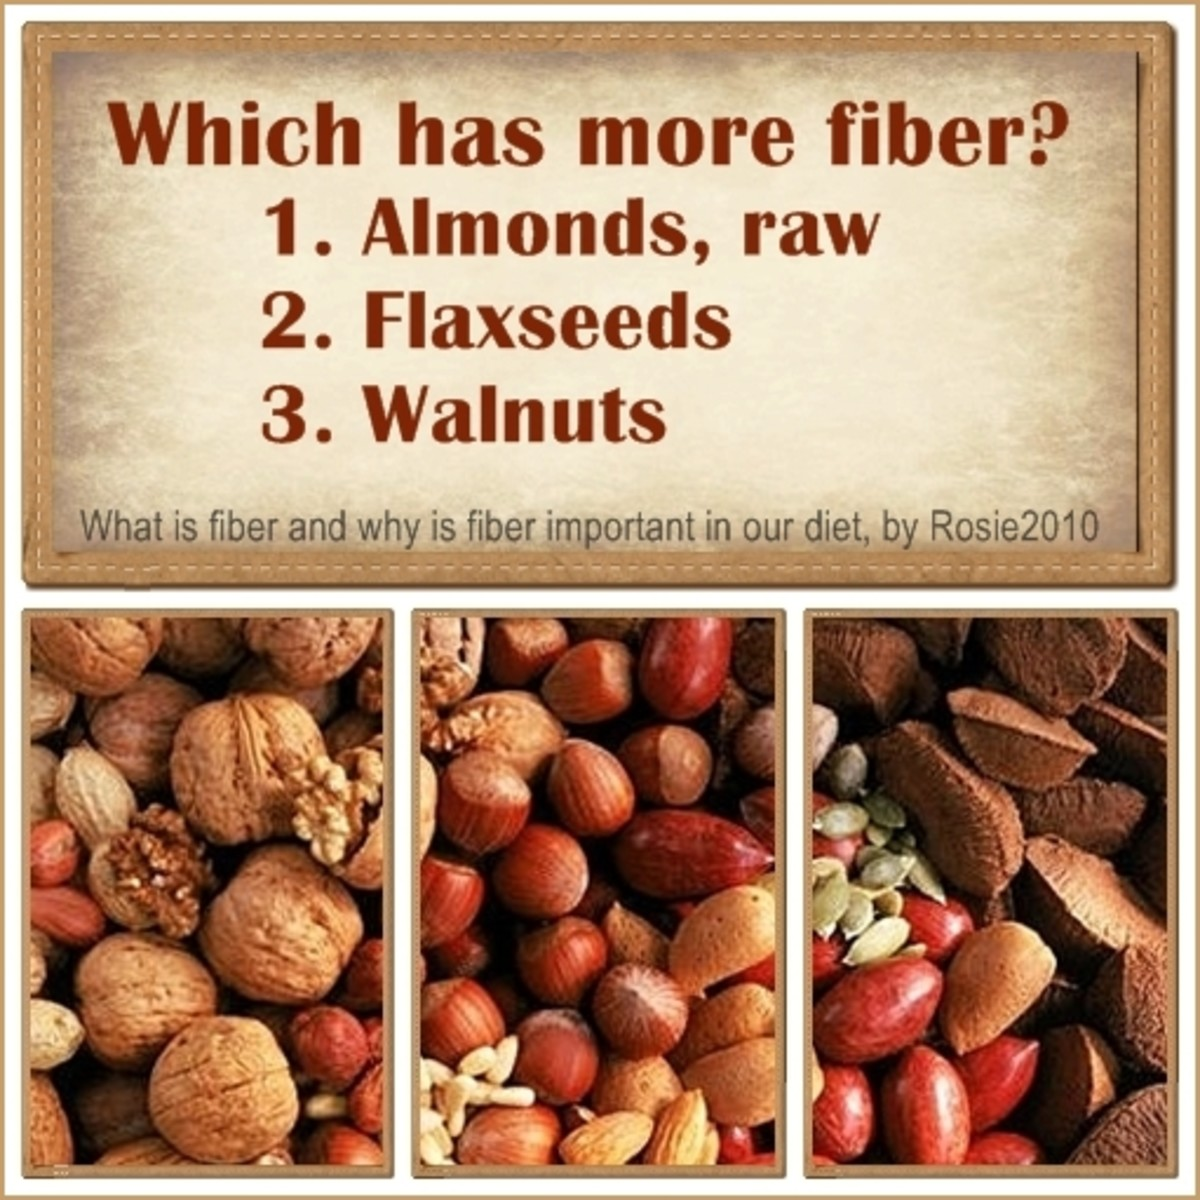 What is Fiber and Why is Fiber Important in our Diet, by Rosie2010 - Answer: #2 Flaxseeds